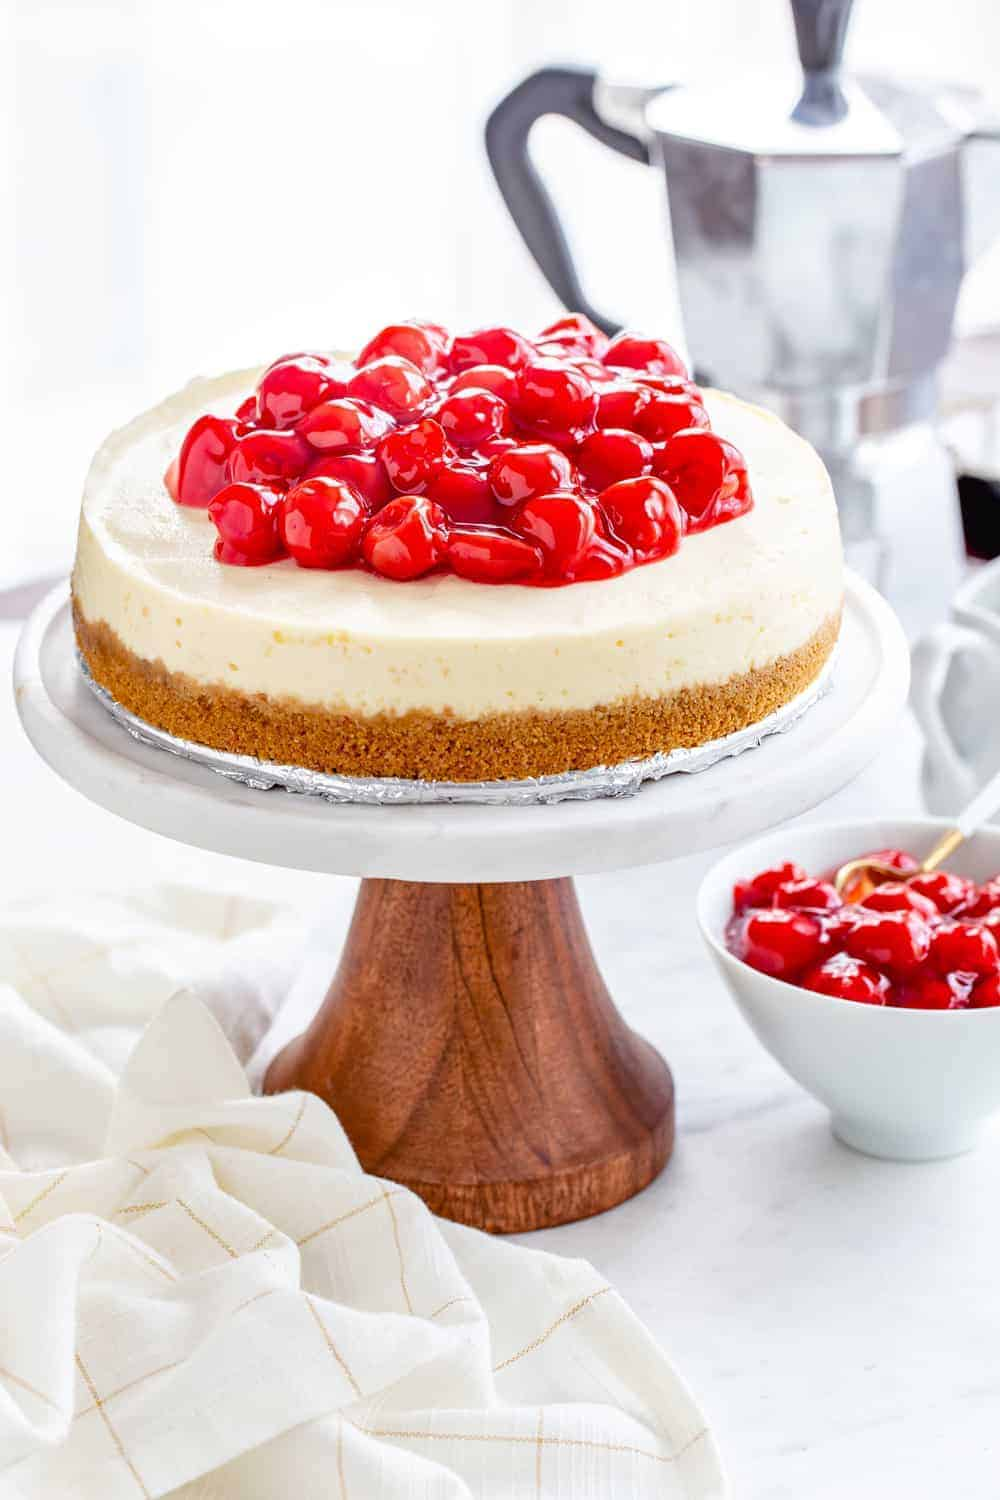 Instant Pot Cheesecake couldn't be easier or more delicious. Serve it up with pie filling, fresh fruit, or chocolate ganache for the perfect dessert.